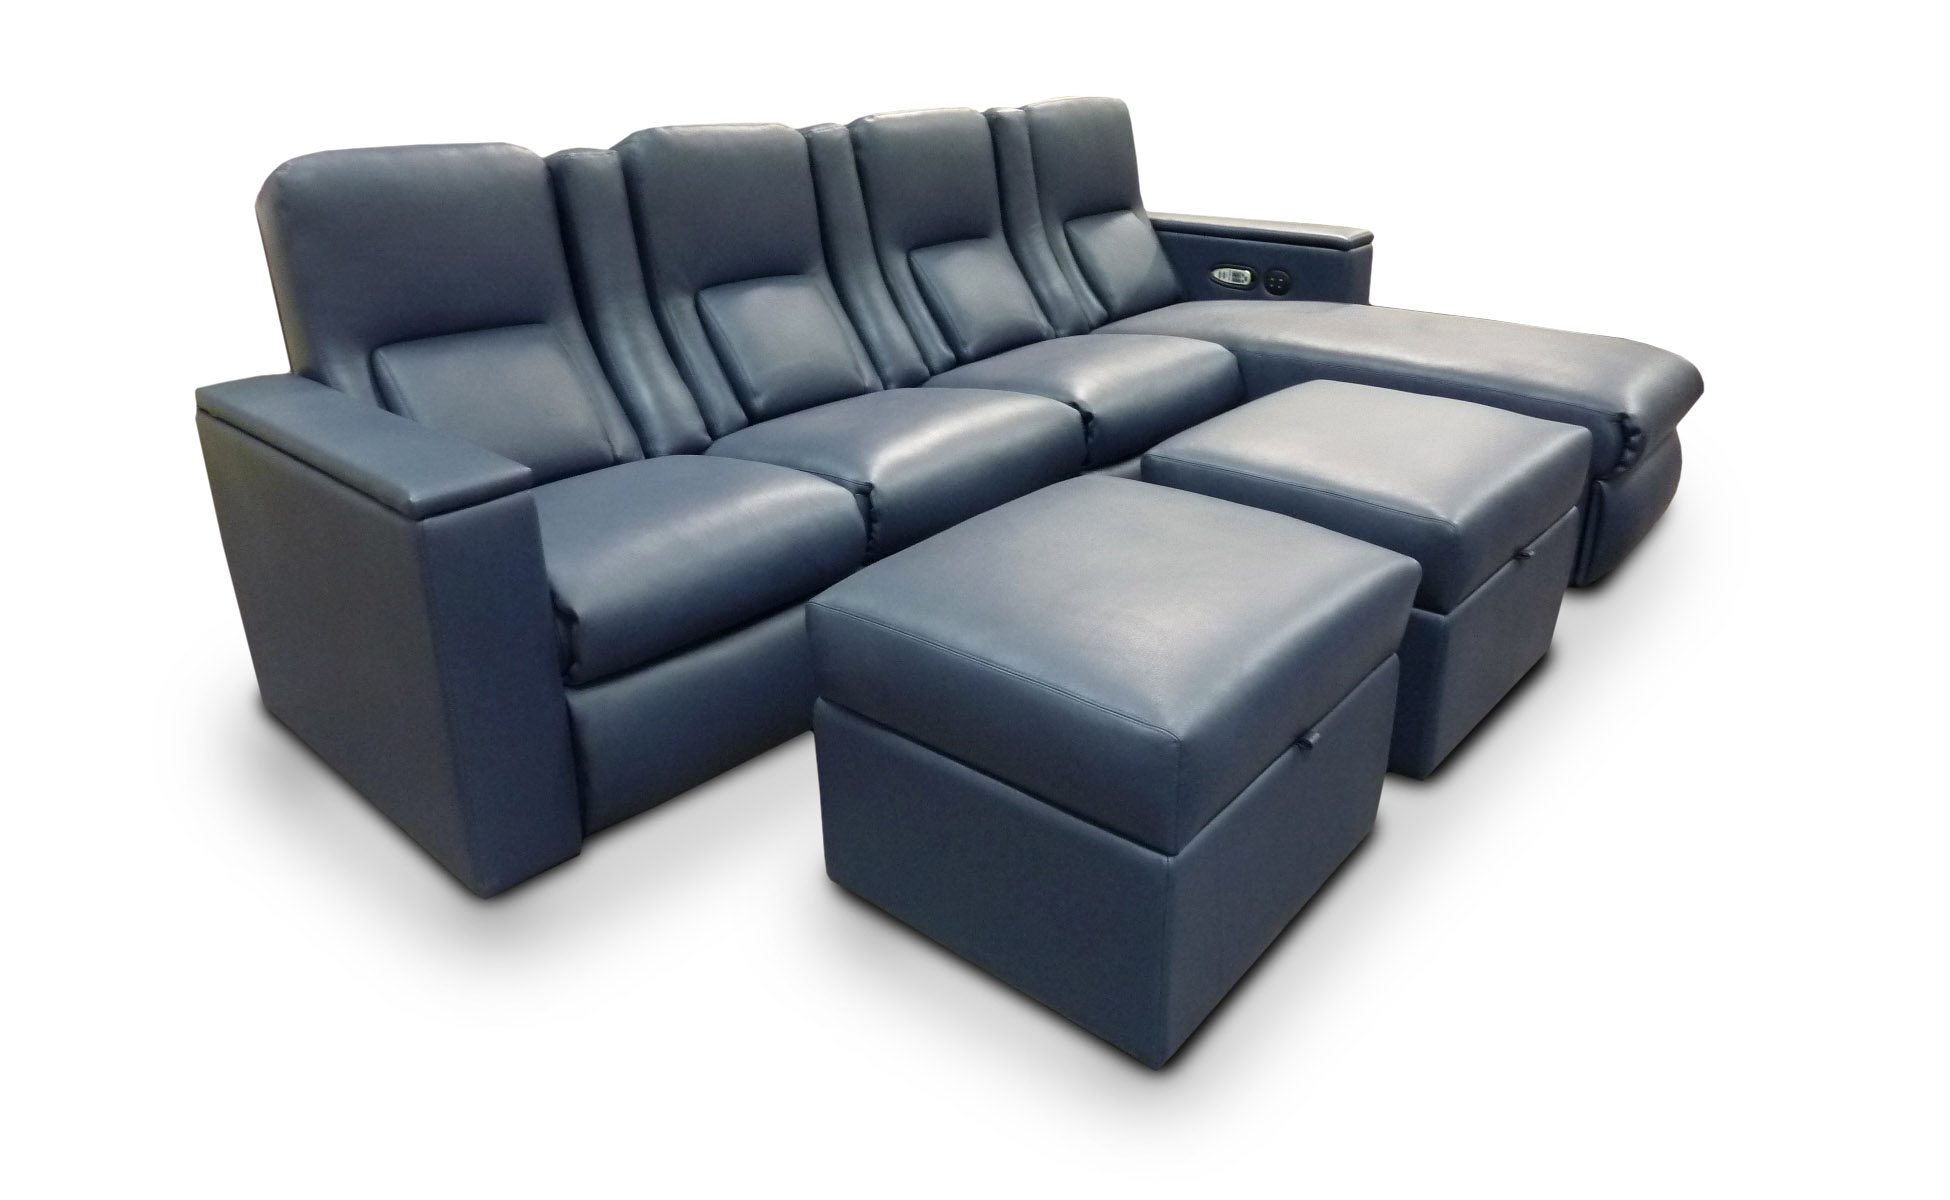 Madison Pocket Arm; Motorized Tray Tables in Custom Outside Arms; Motorized Press Back; Heat-Massage; Data Port in outside arm; Storage Drawer in Chaise; Chaise Footrests; Storage Ottomans